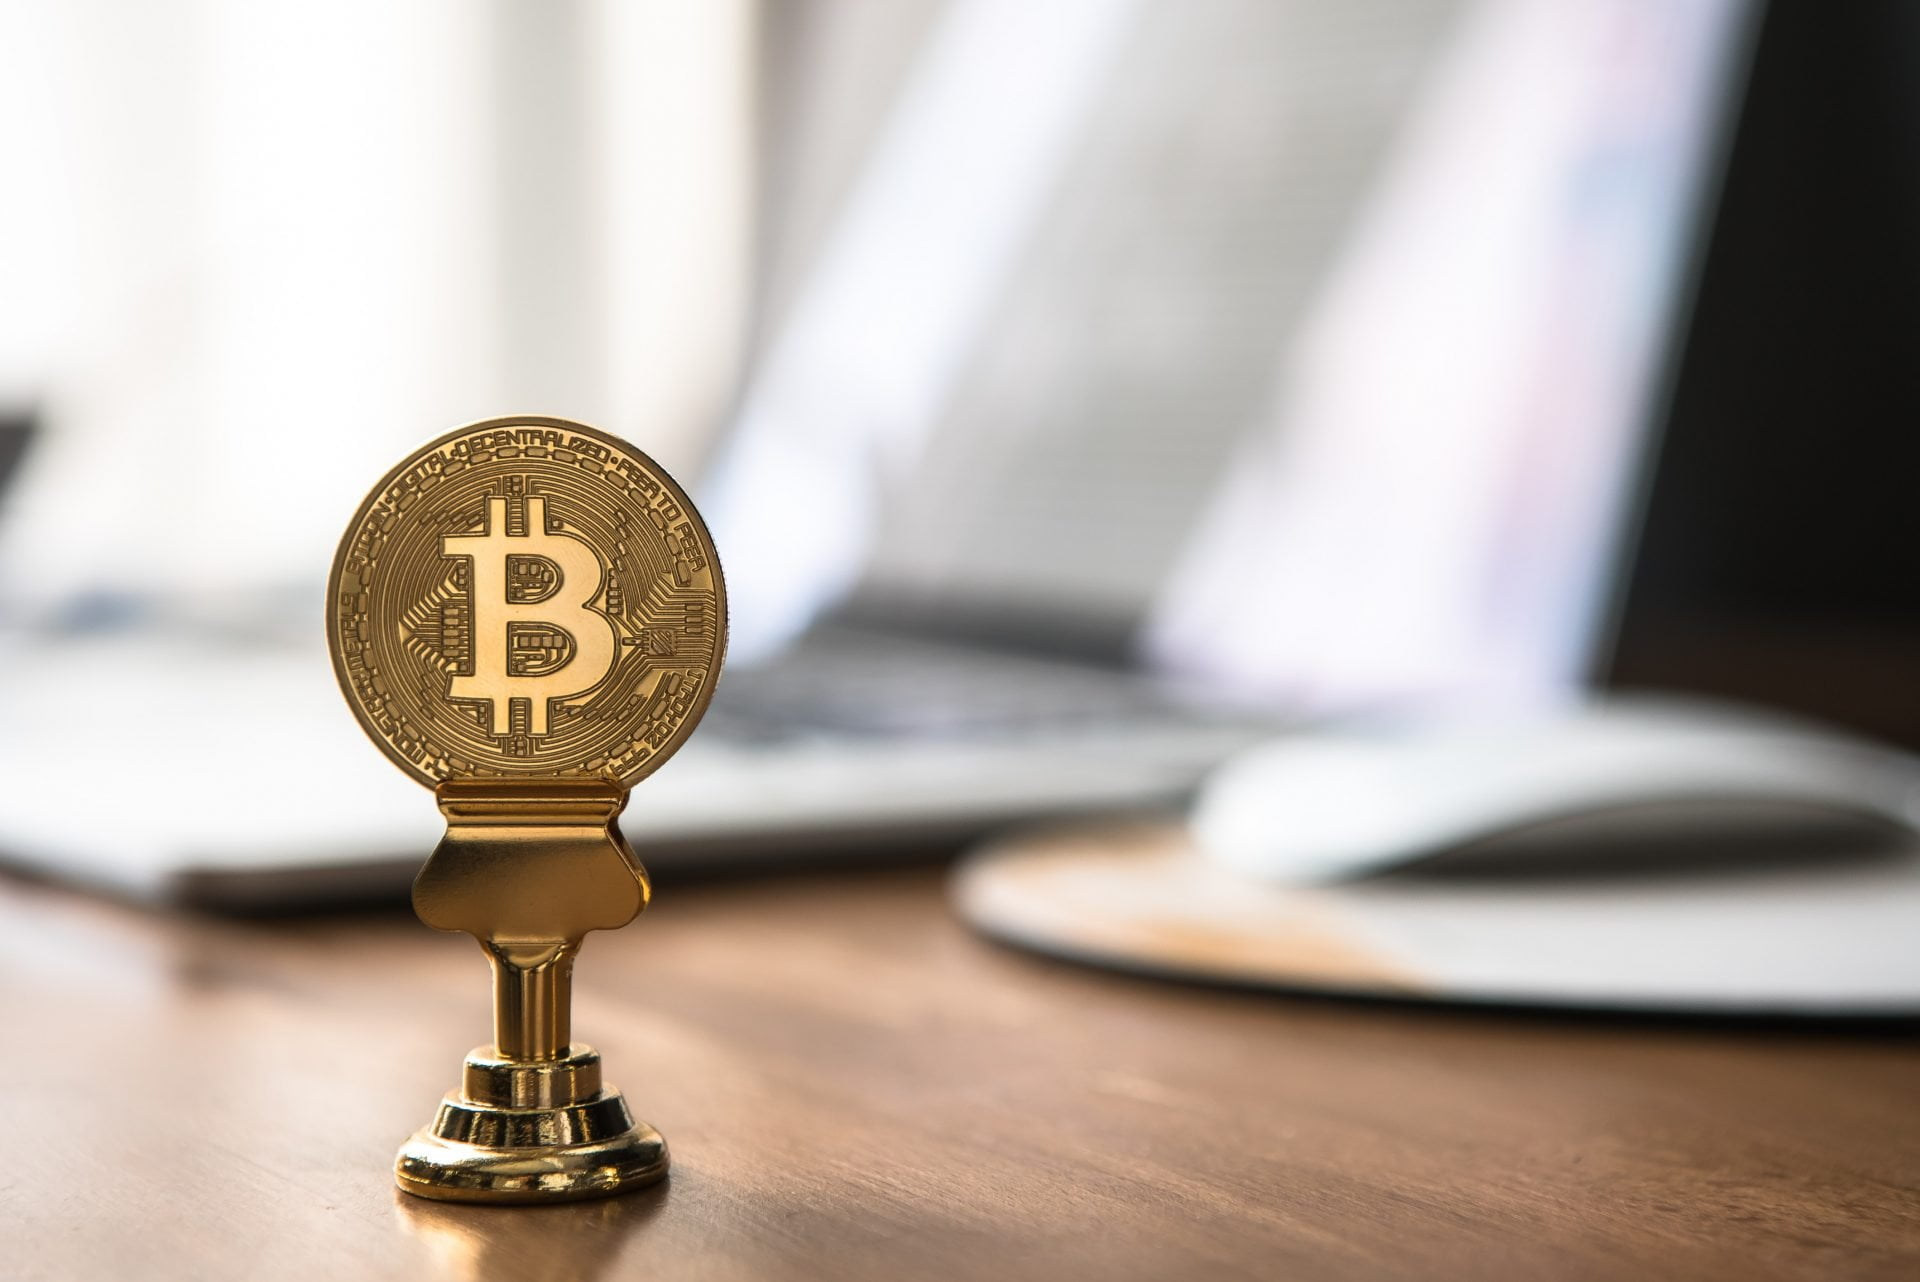 HODL: Bitcoin Investors Hold Their Coins Longer Than Ethereum Holders 28